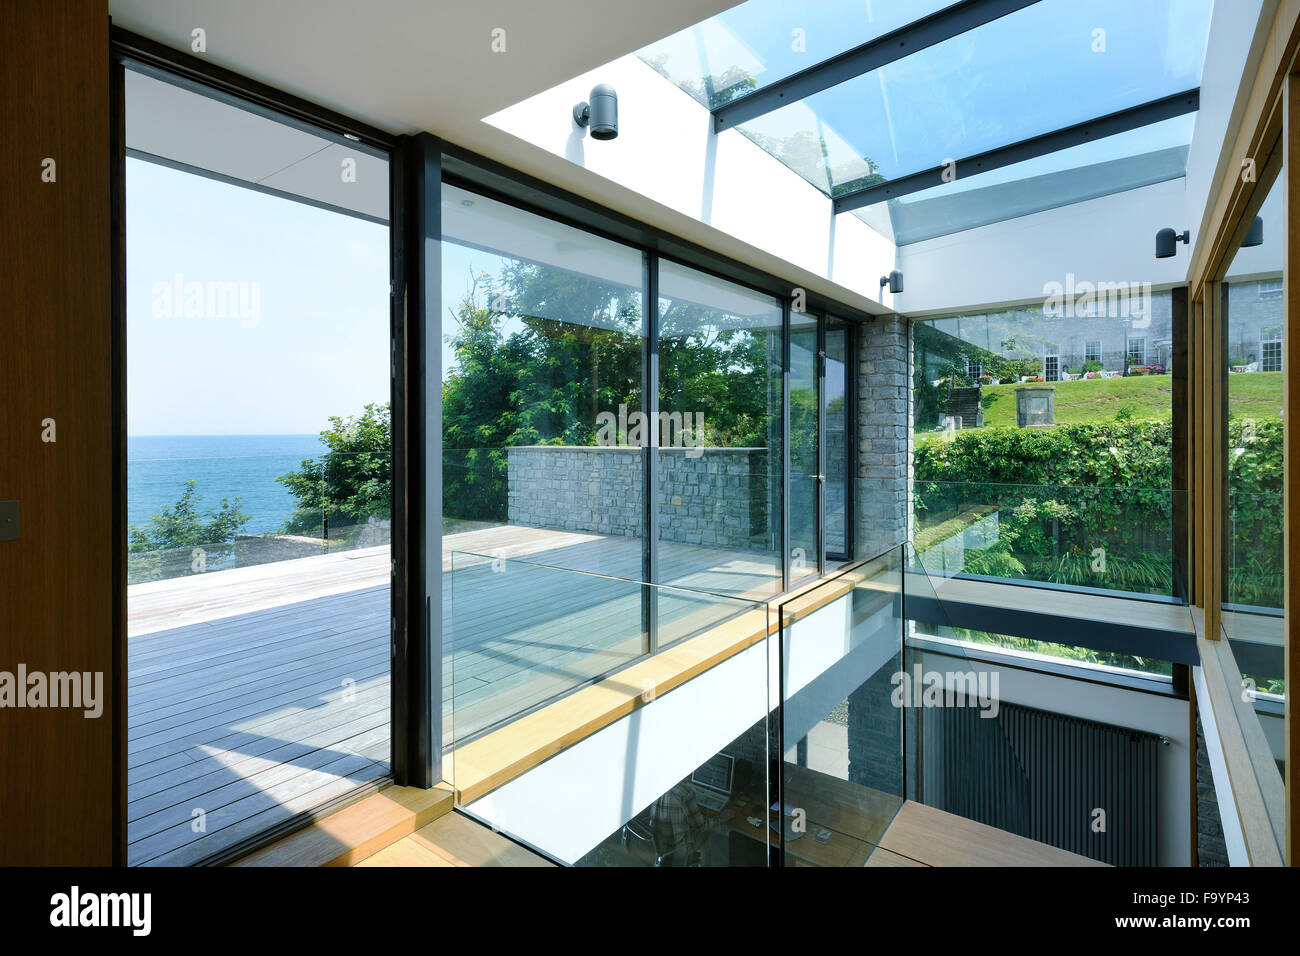 The interior of a modern house on the coast large sliding glass large sliding glass doors open floor to ceiling glass panels a low profile building in a seaside location a view out to sea planetlyrics Images